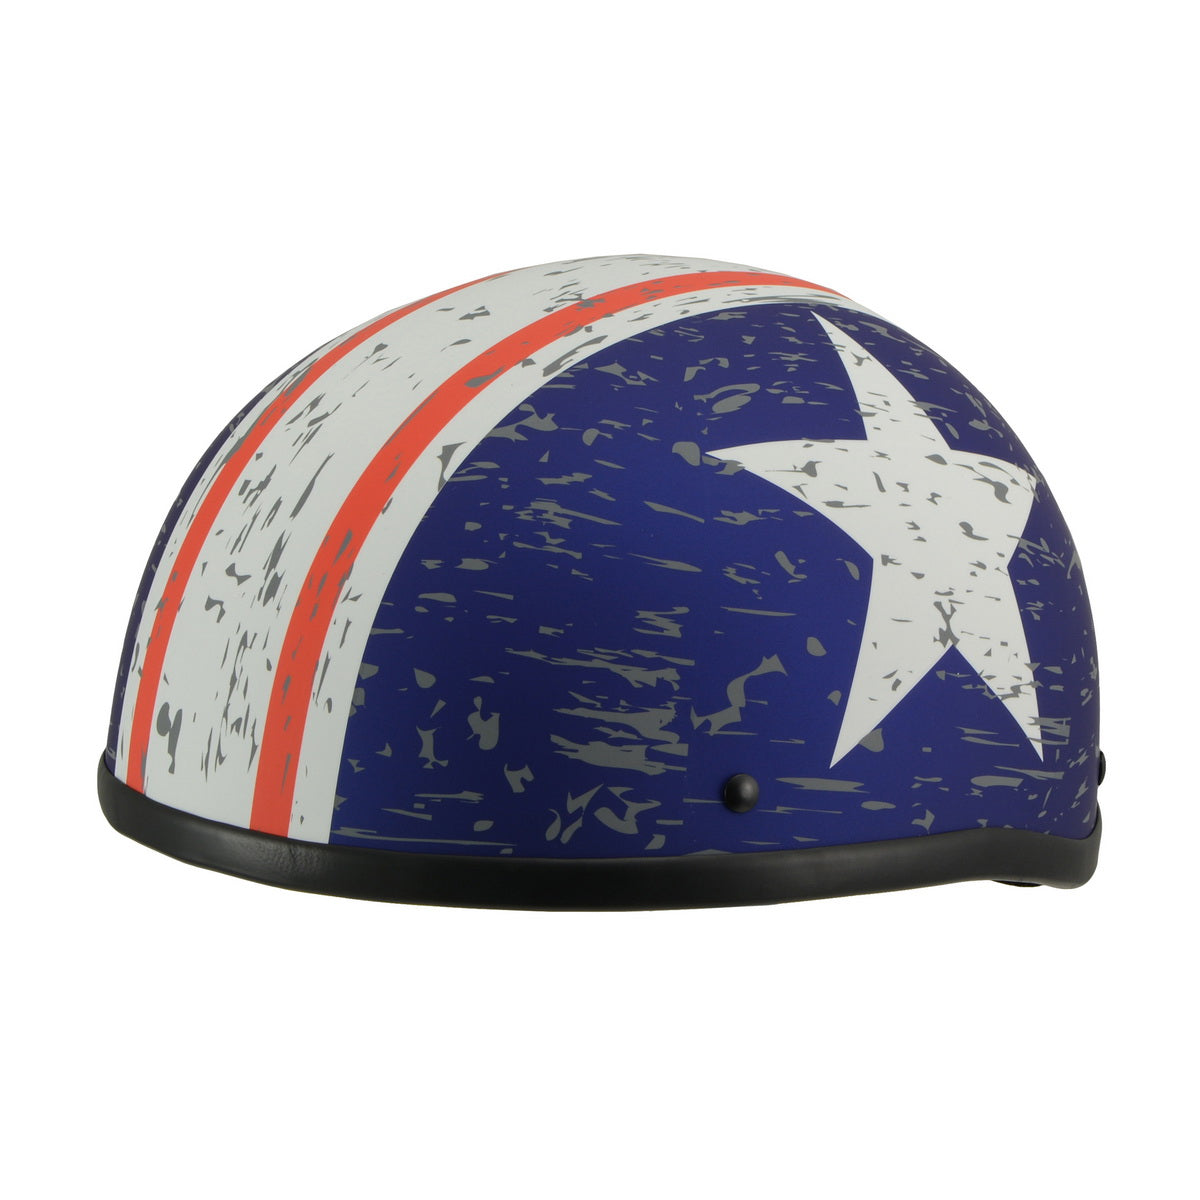 Milwaukee Performance Helmet MPH9774DOT 'Vintage Star' DOT Half Face